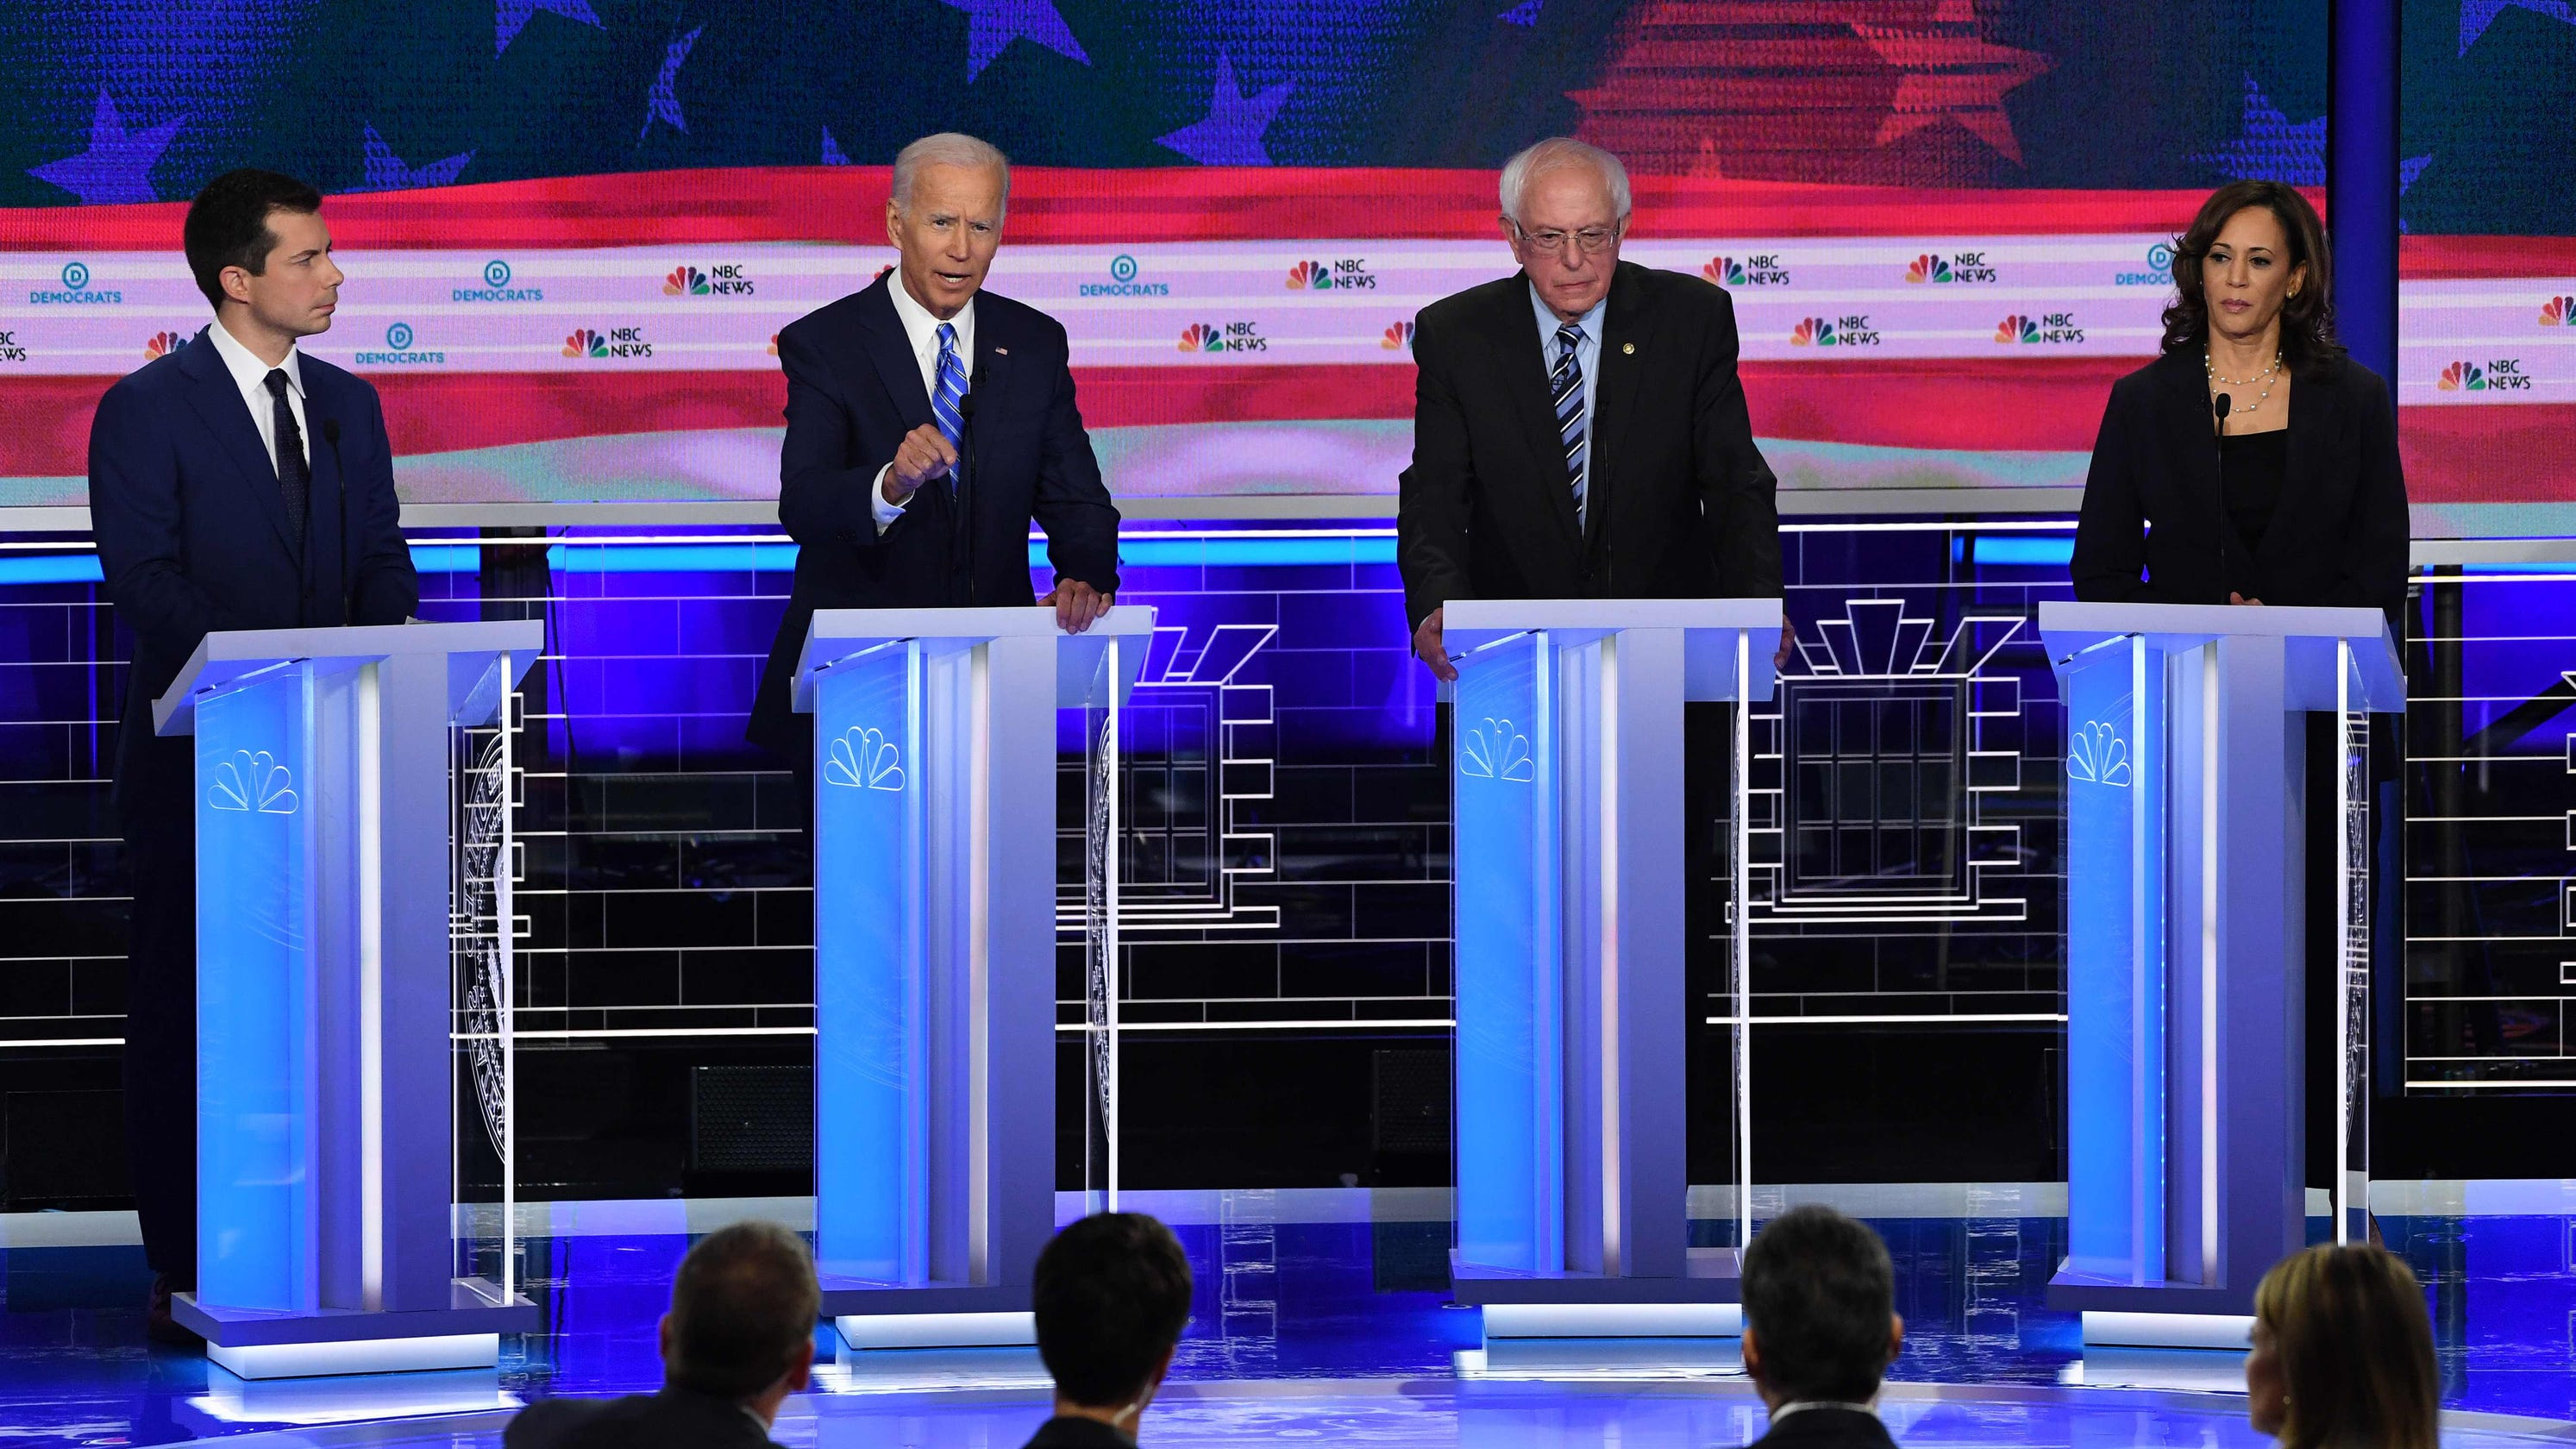 Democratic Debates Grading The 2020 Candidates Vying To